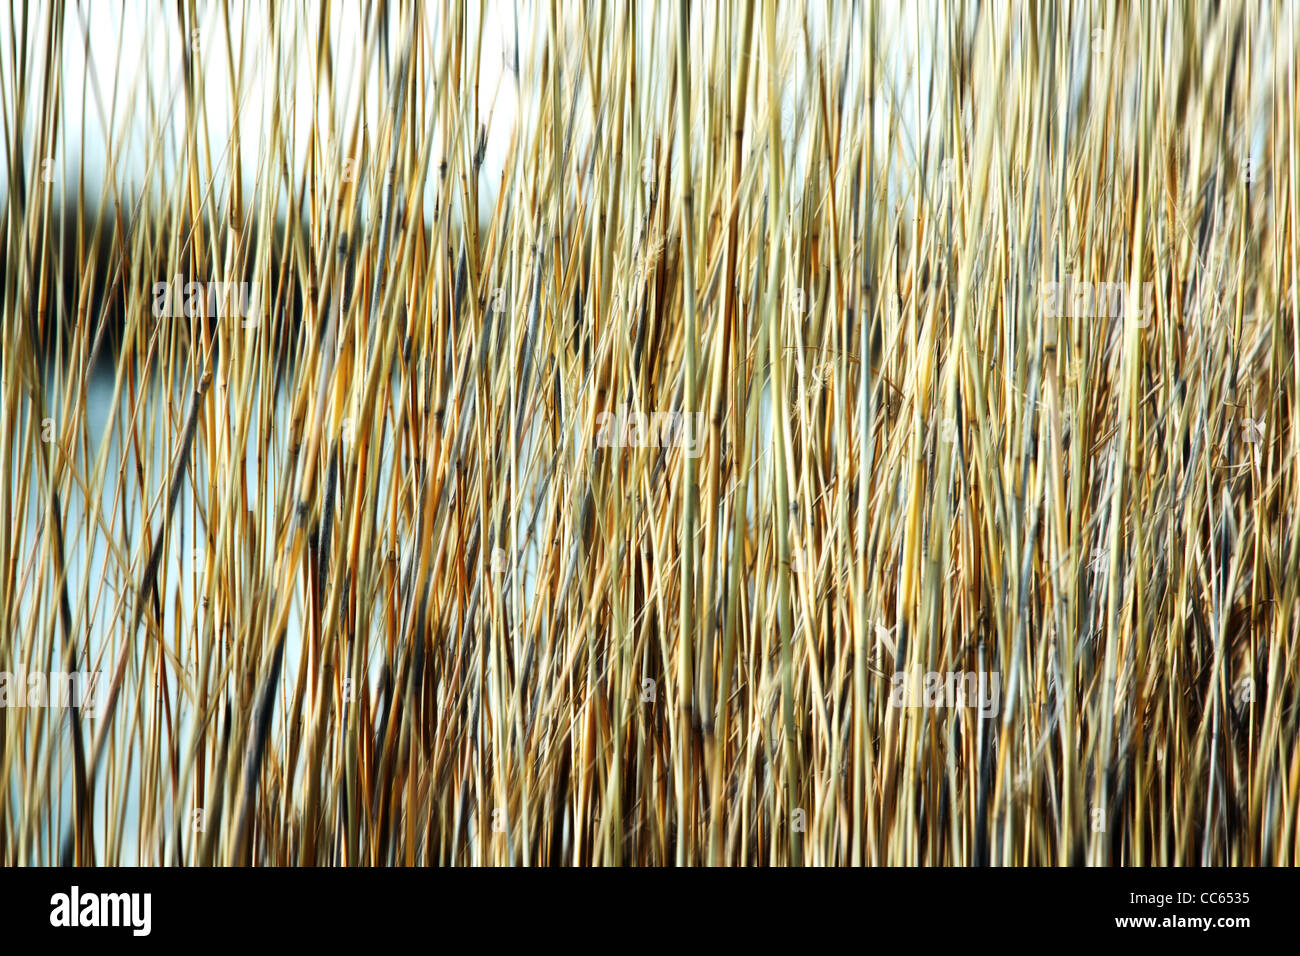 Blured reed background. Stock Foto